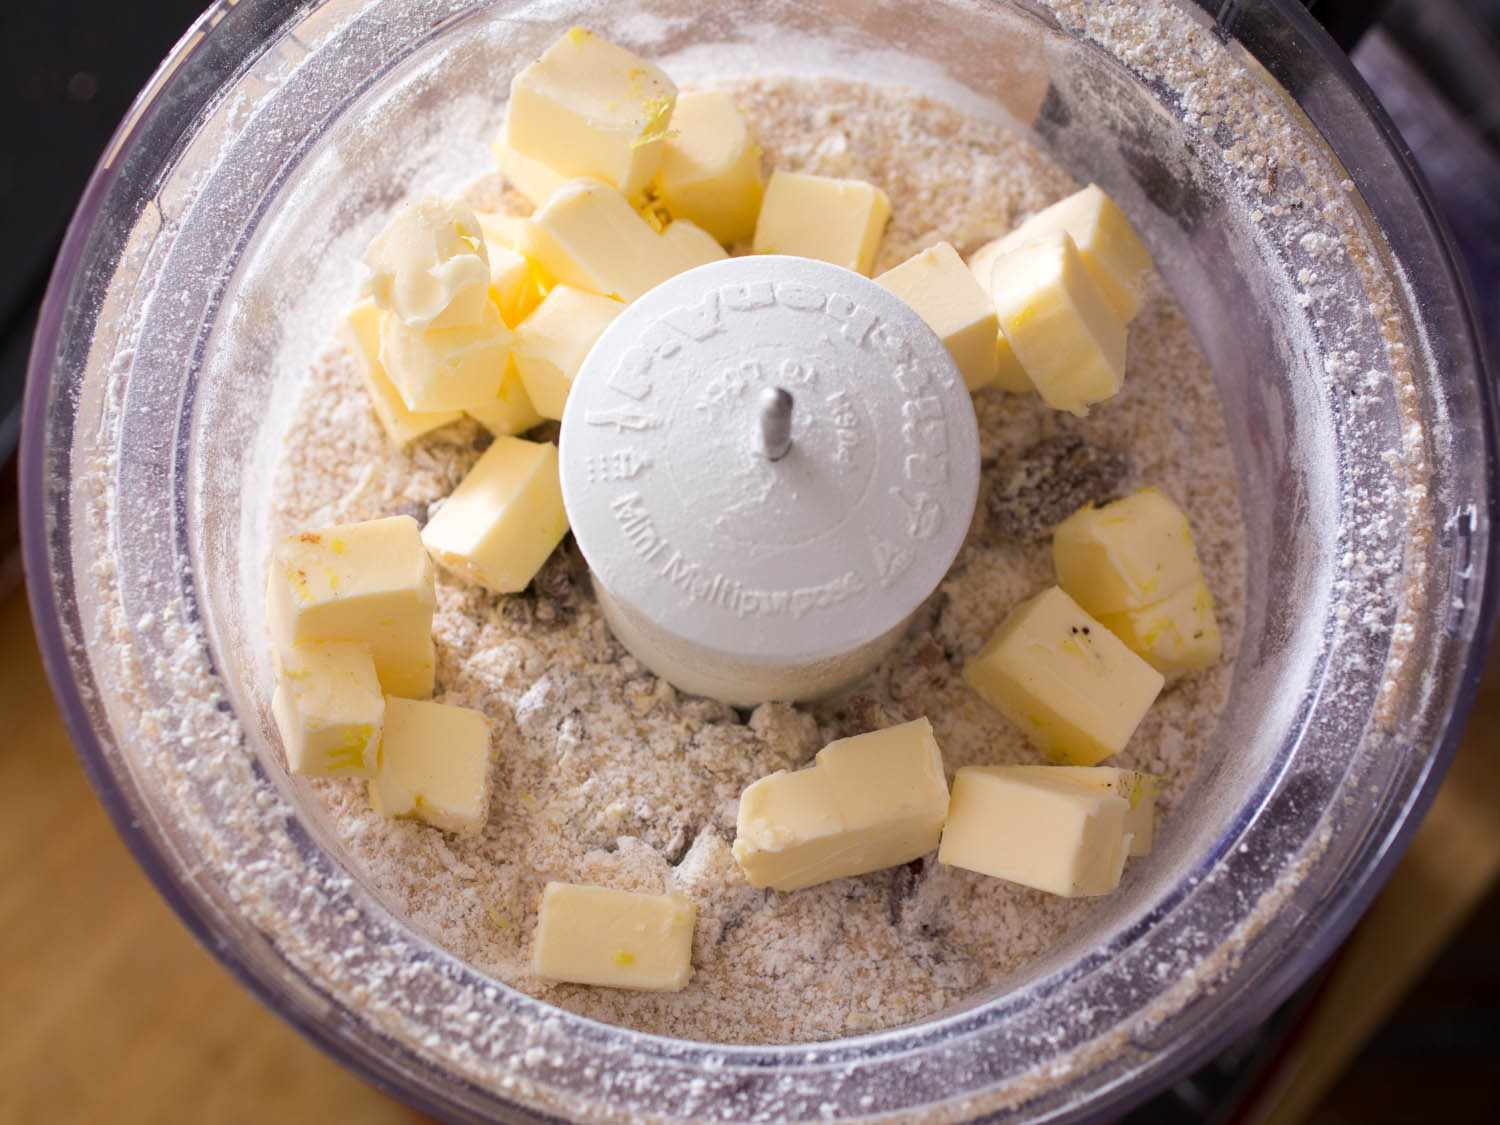 Overhead shot of food processor bowl of dry ingredients for crumb topping, with chunks of butter on top